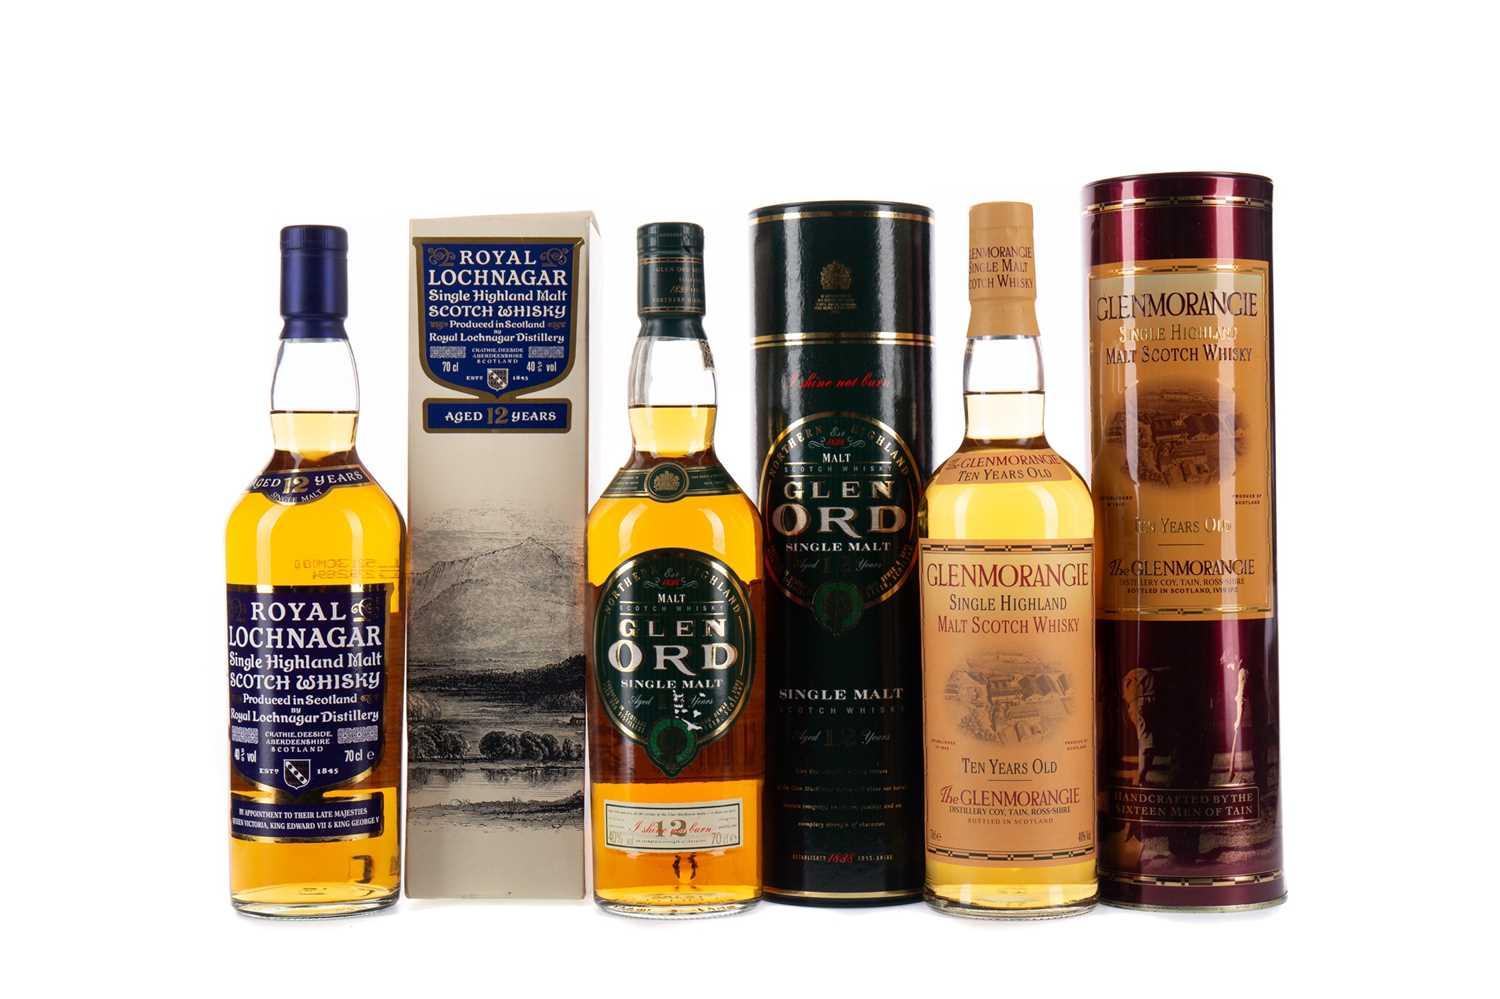 Lot 32 - GLENMORANGIE 10 YEARS OLD, ROYAL LOCHNAGAR AGED 12 YEARS AND GLEN ORD 12 YEARS OLD